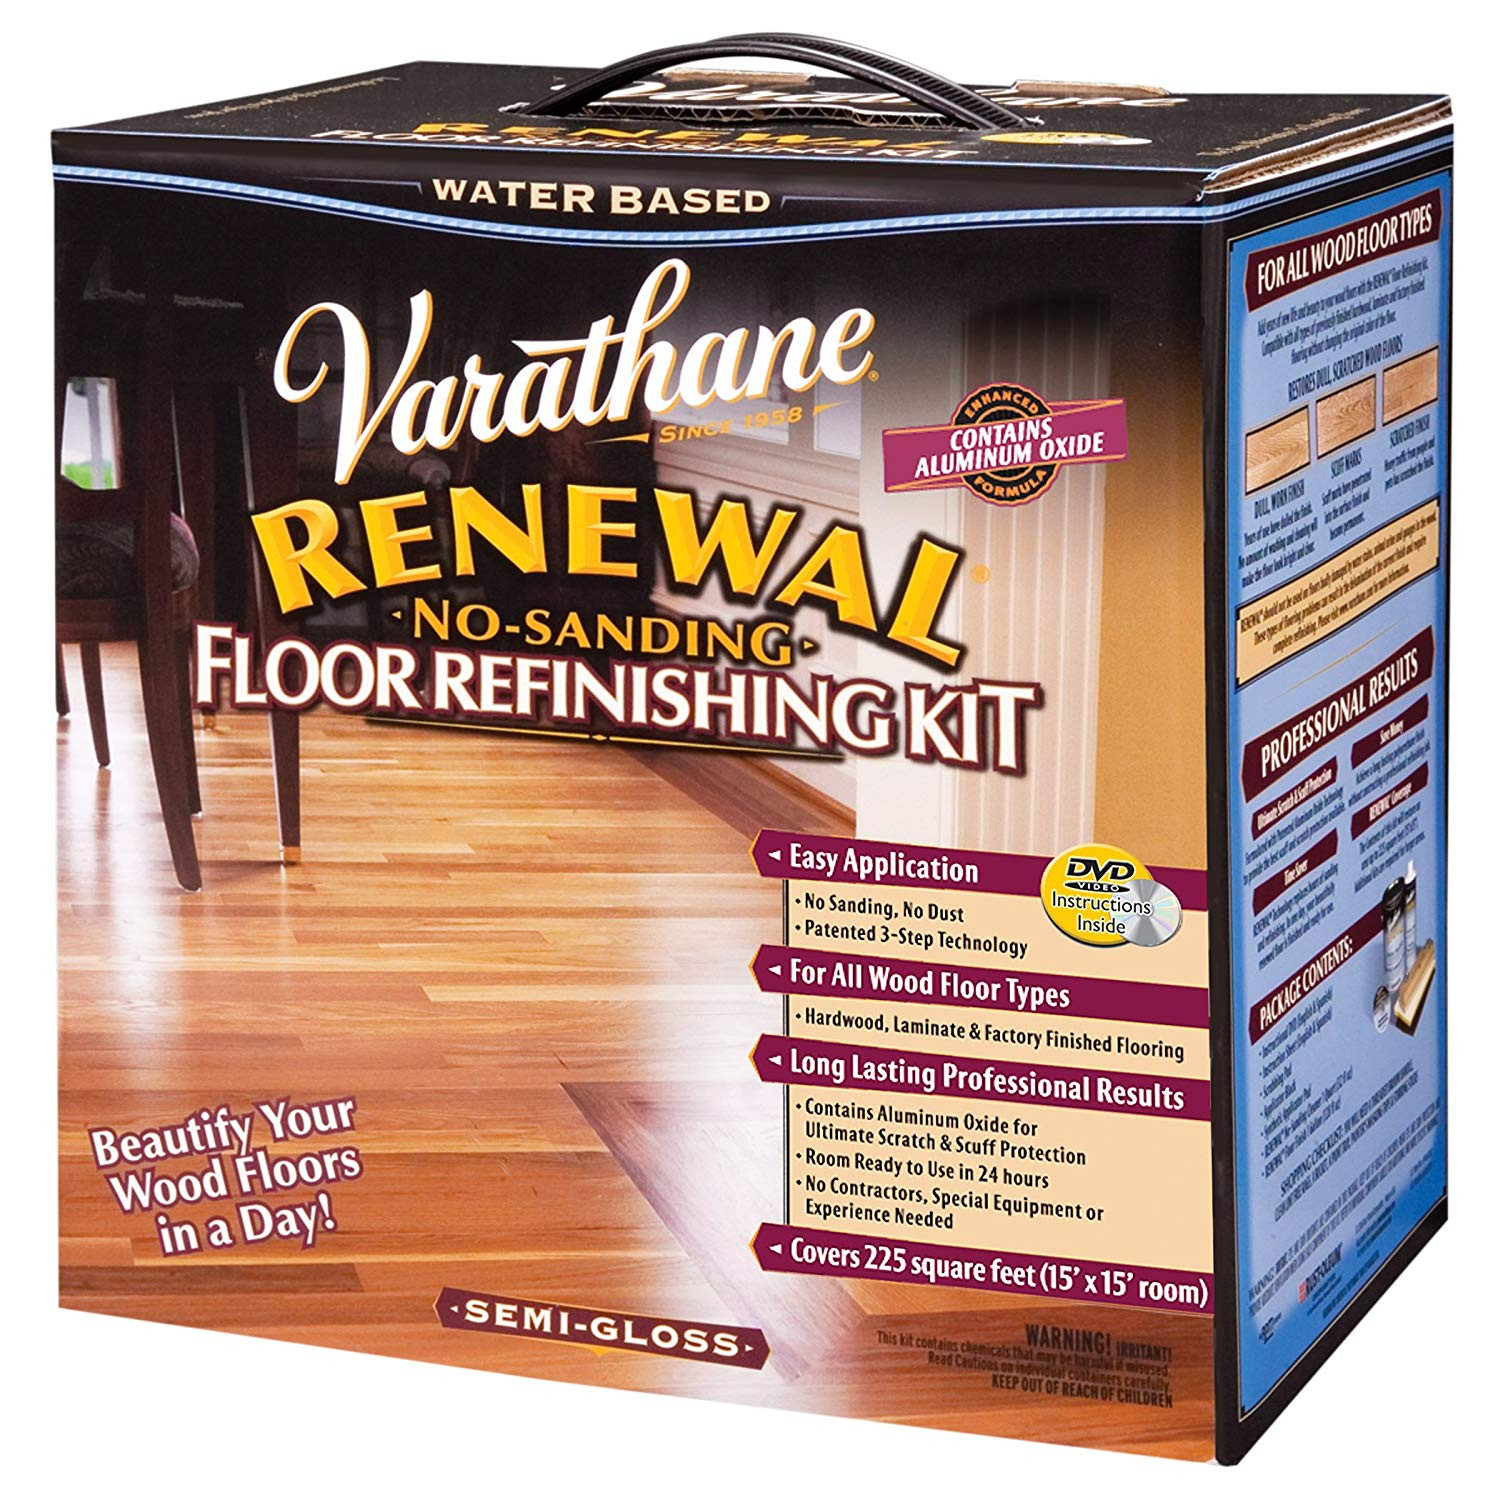 Hardwood Floor Refinishing Prices Per Square Foot Of Amazon Com Rust Oleum Varathane 242008 Renewal No Sanding Floor with Amazon Com Rust Oleum Varathane 242008 Renewal No Sanding Floor Refinishing Kit Semi Gloss Home Improvement